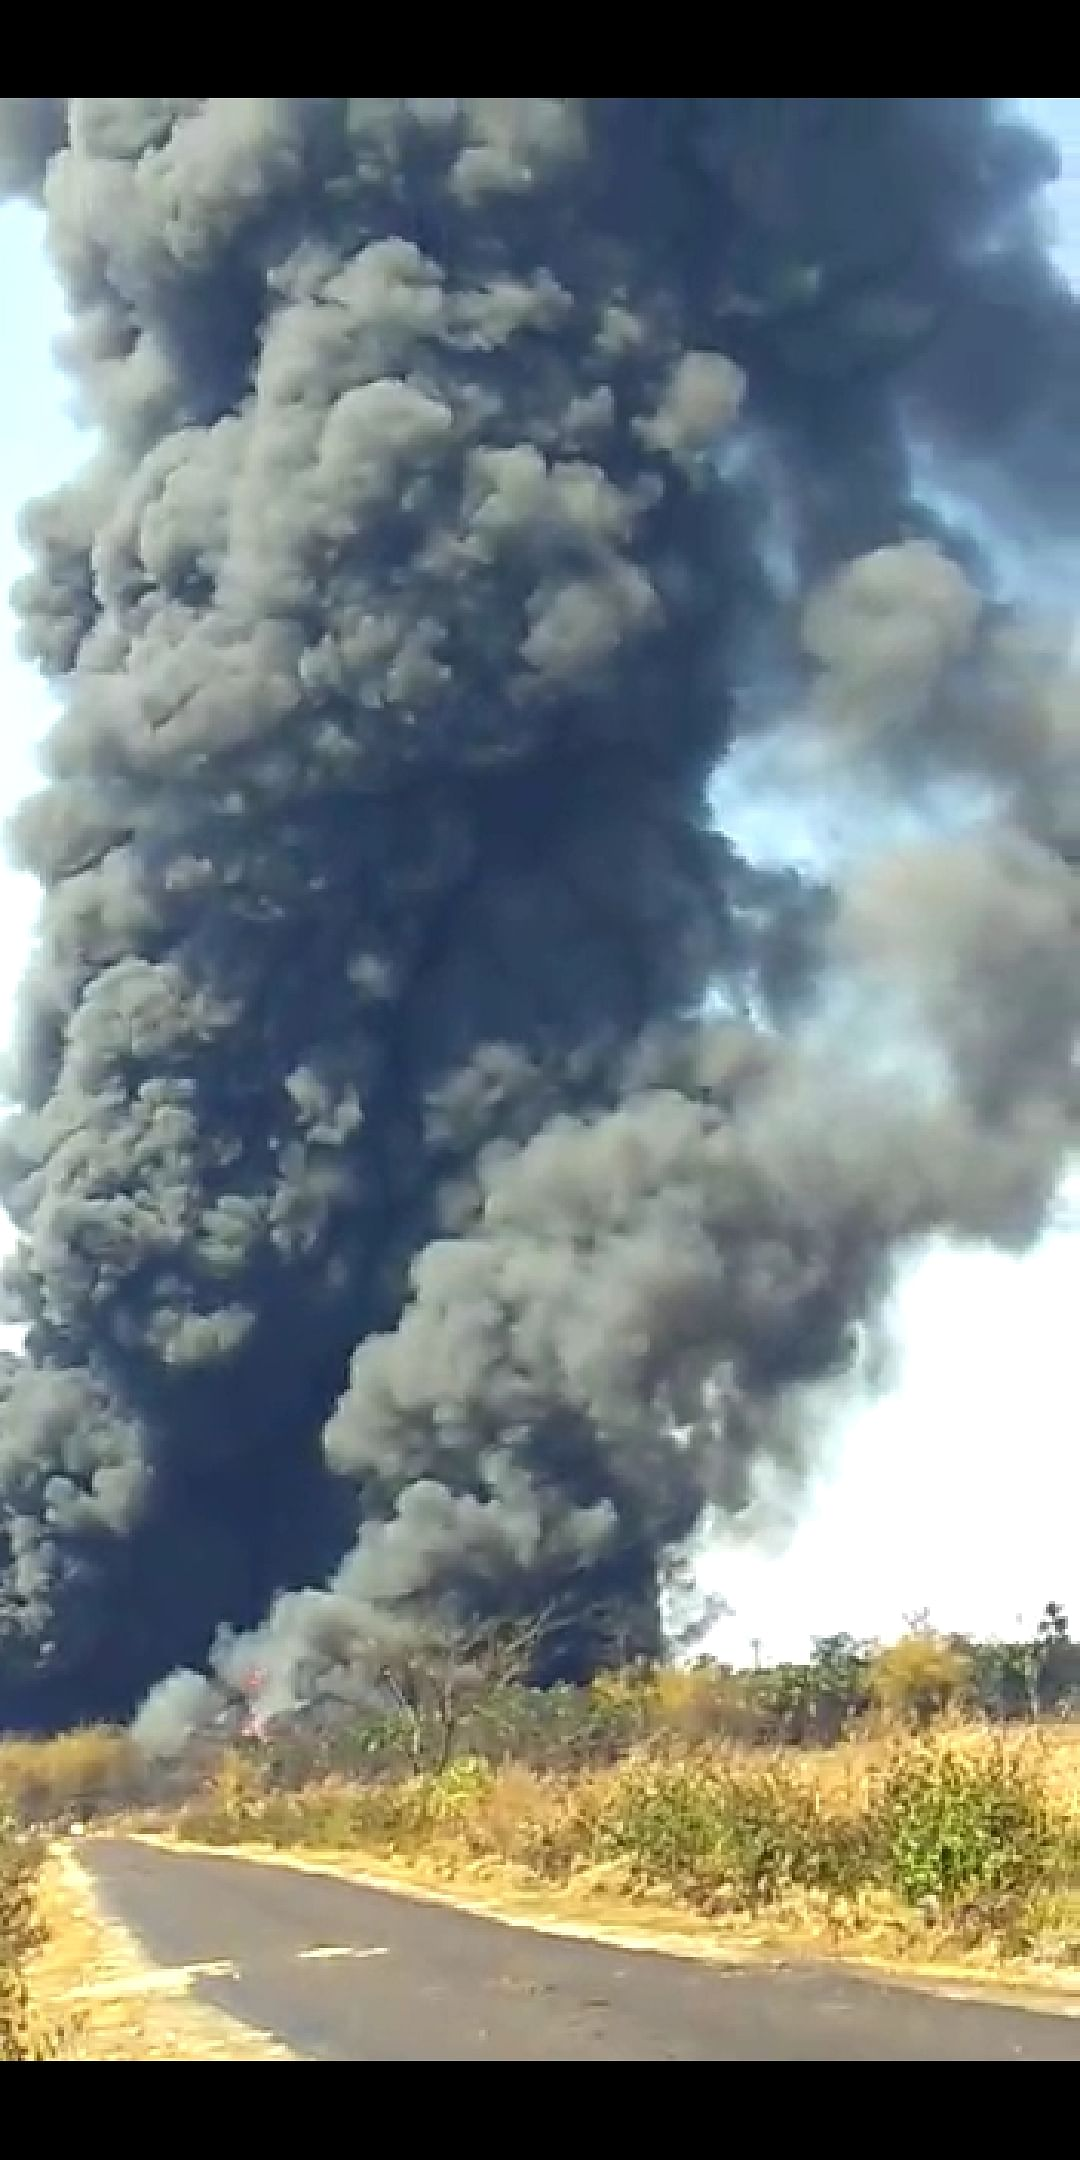 Black smoke continuously coming out of the site